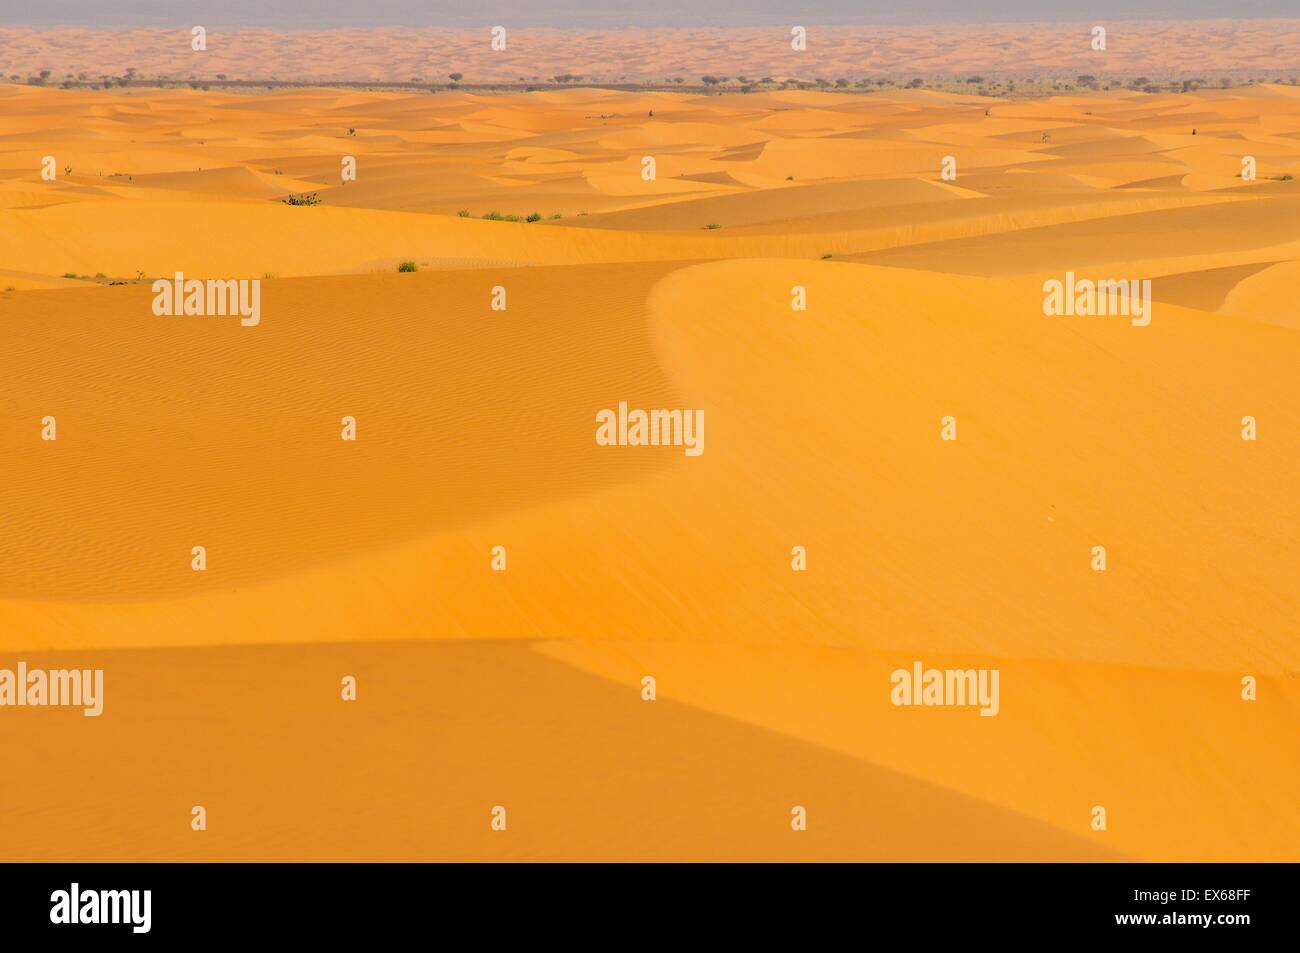 Desert landscape with sand dunes, route from Atar to Tidjikja, Adrar region, Mauritania - Stock Image